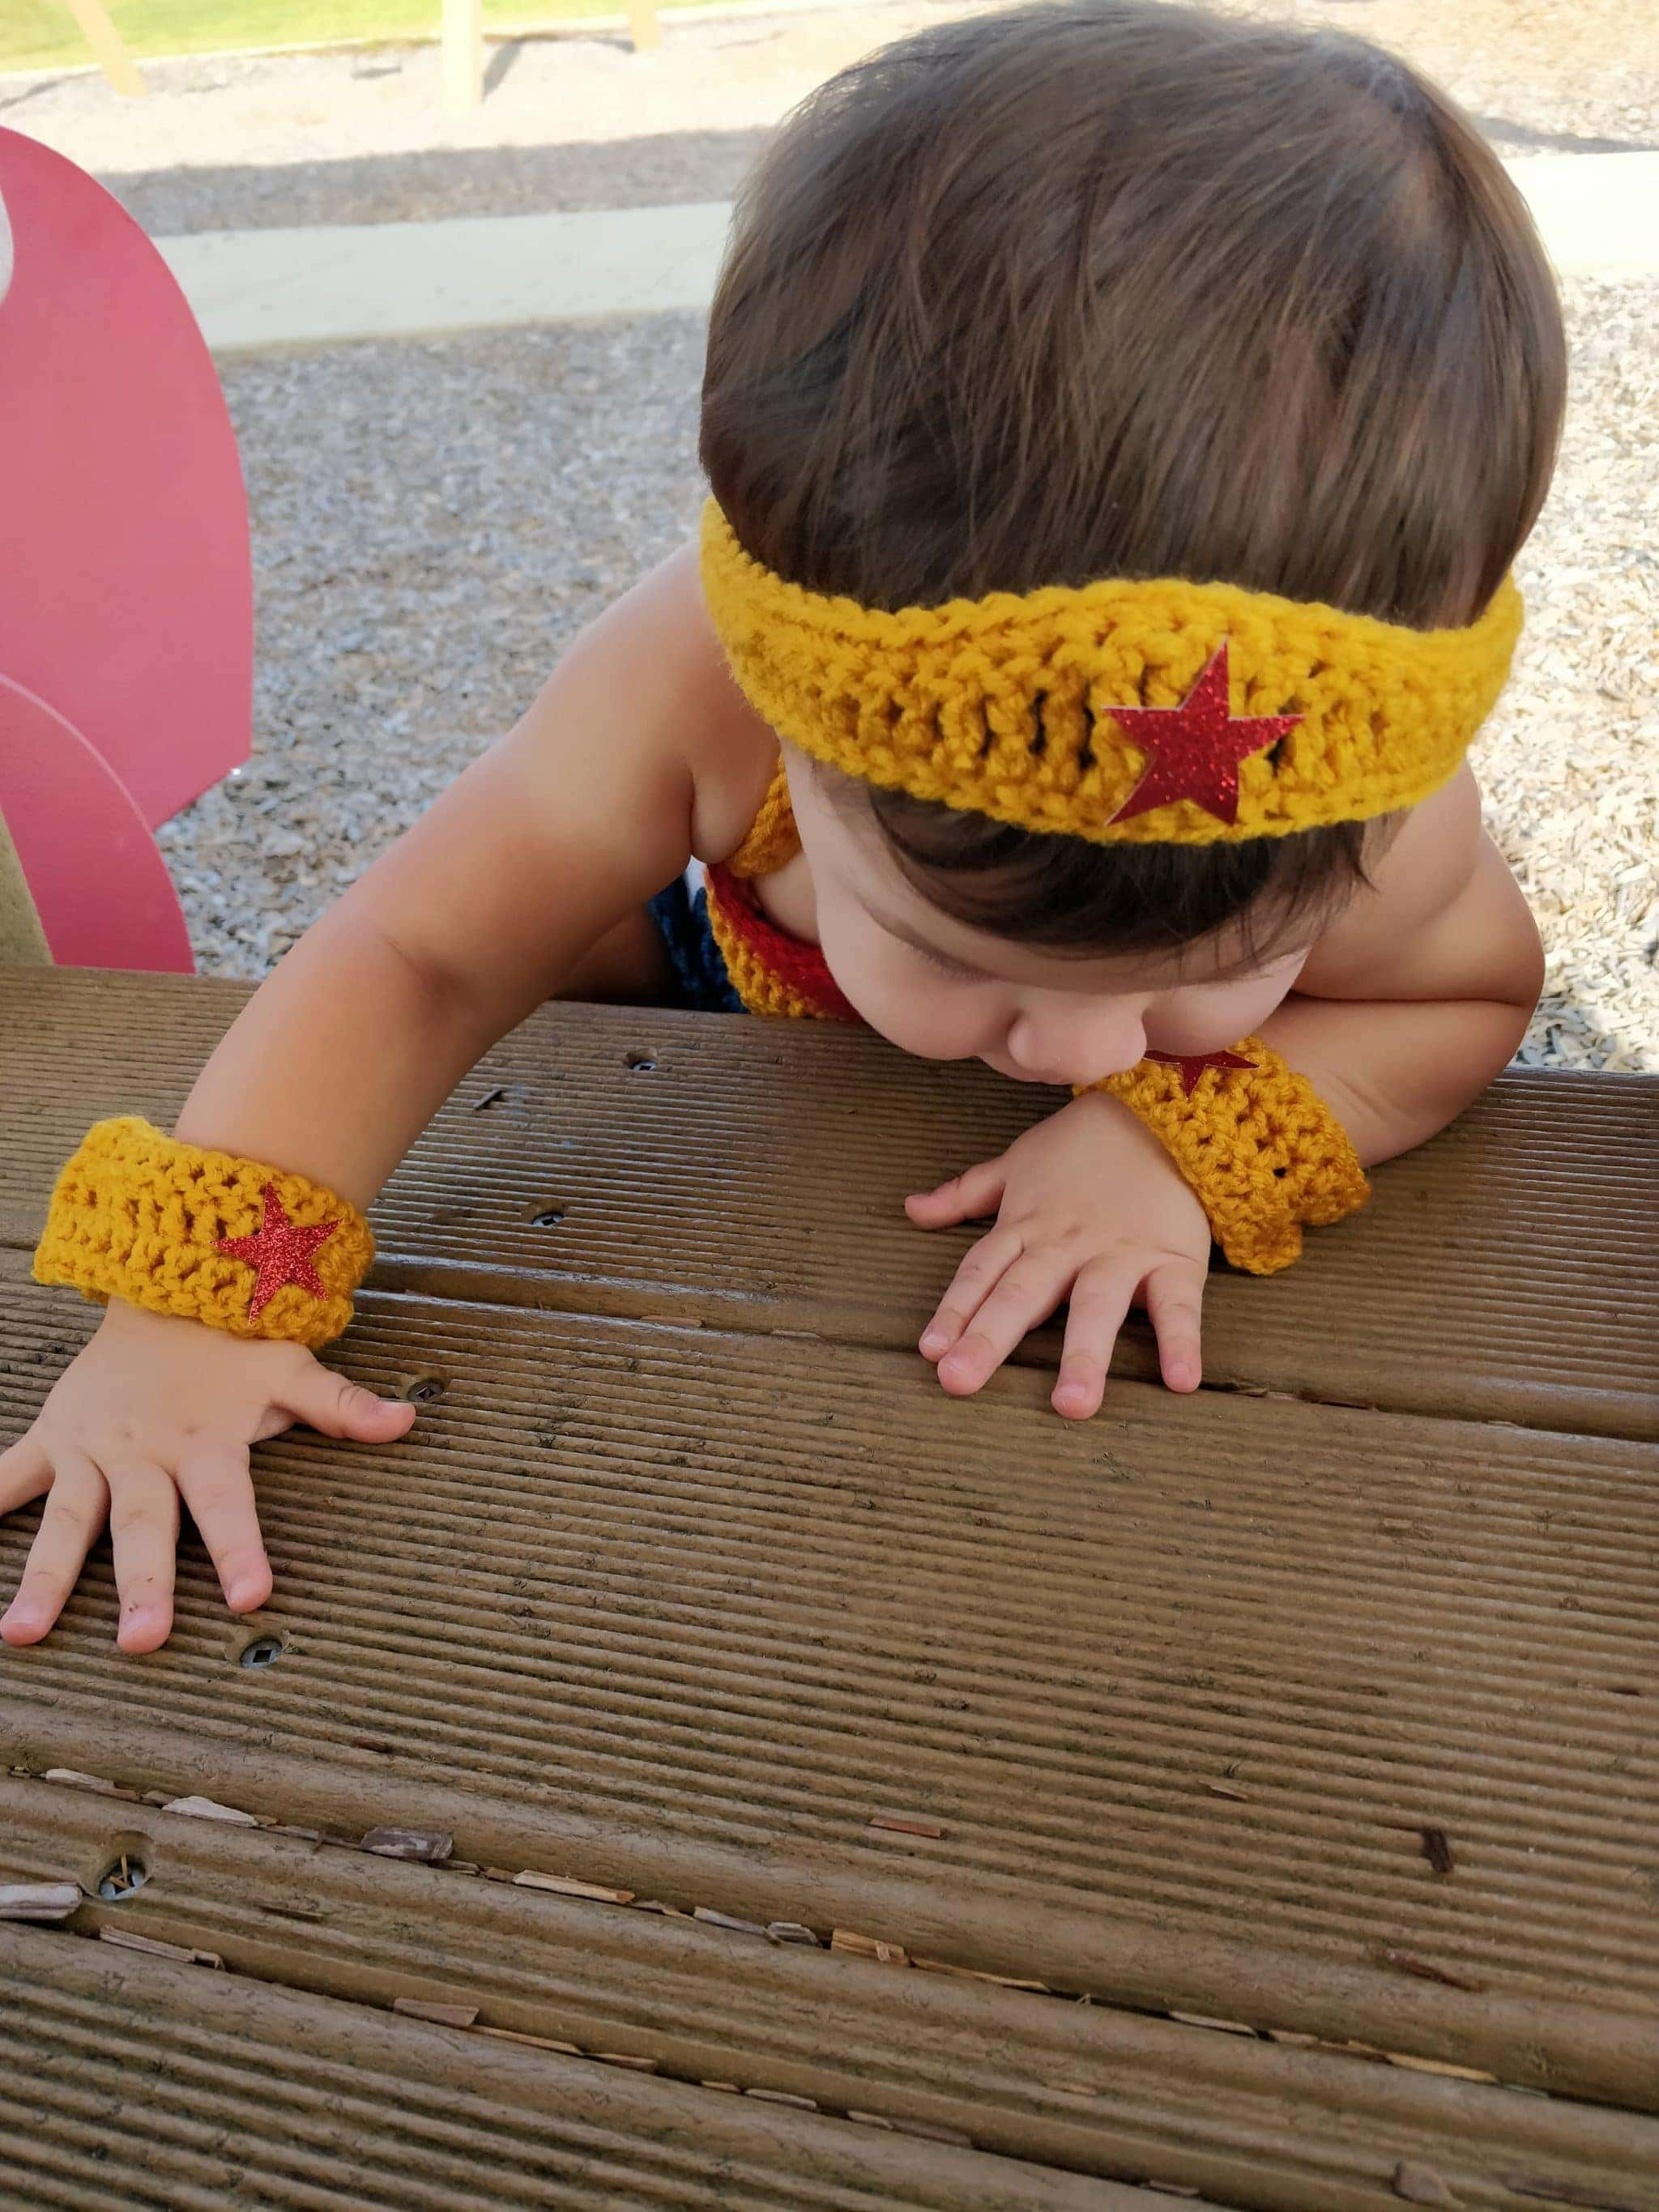 Crochet headband and cuff links of wonder woman outfit being worn by little girl at the park